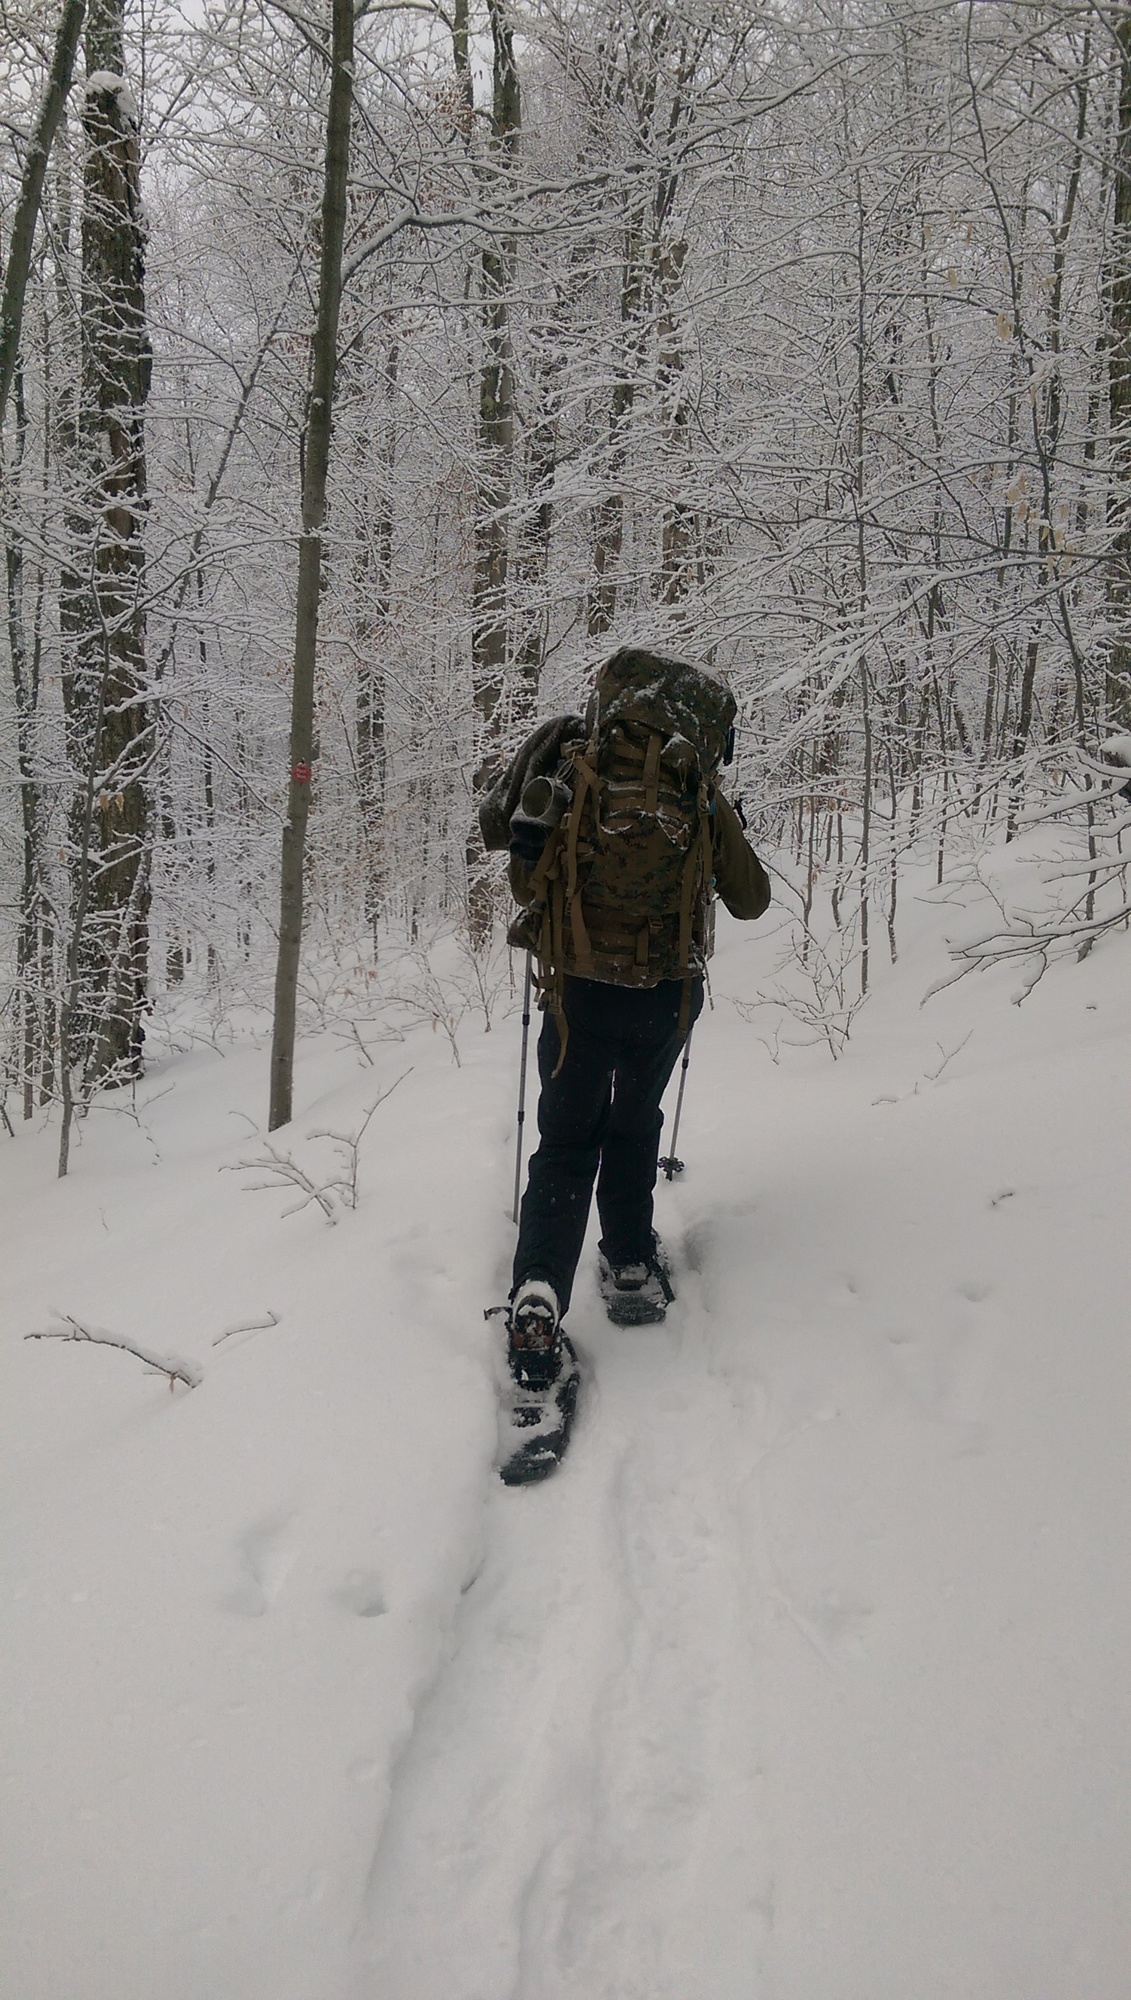 Winter Trail Conditions